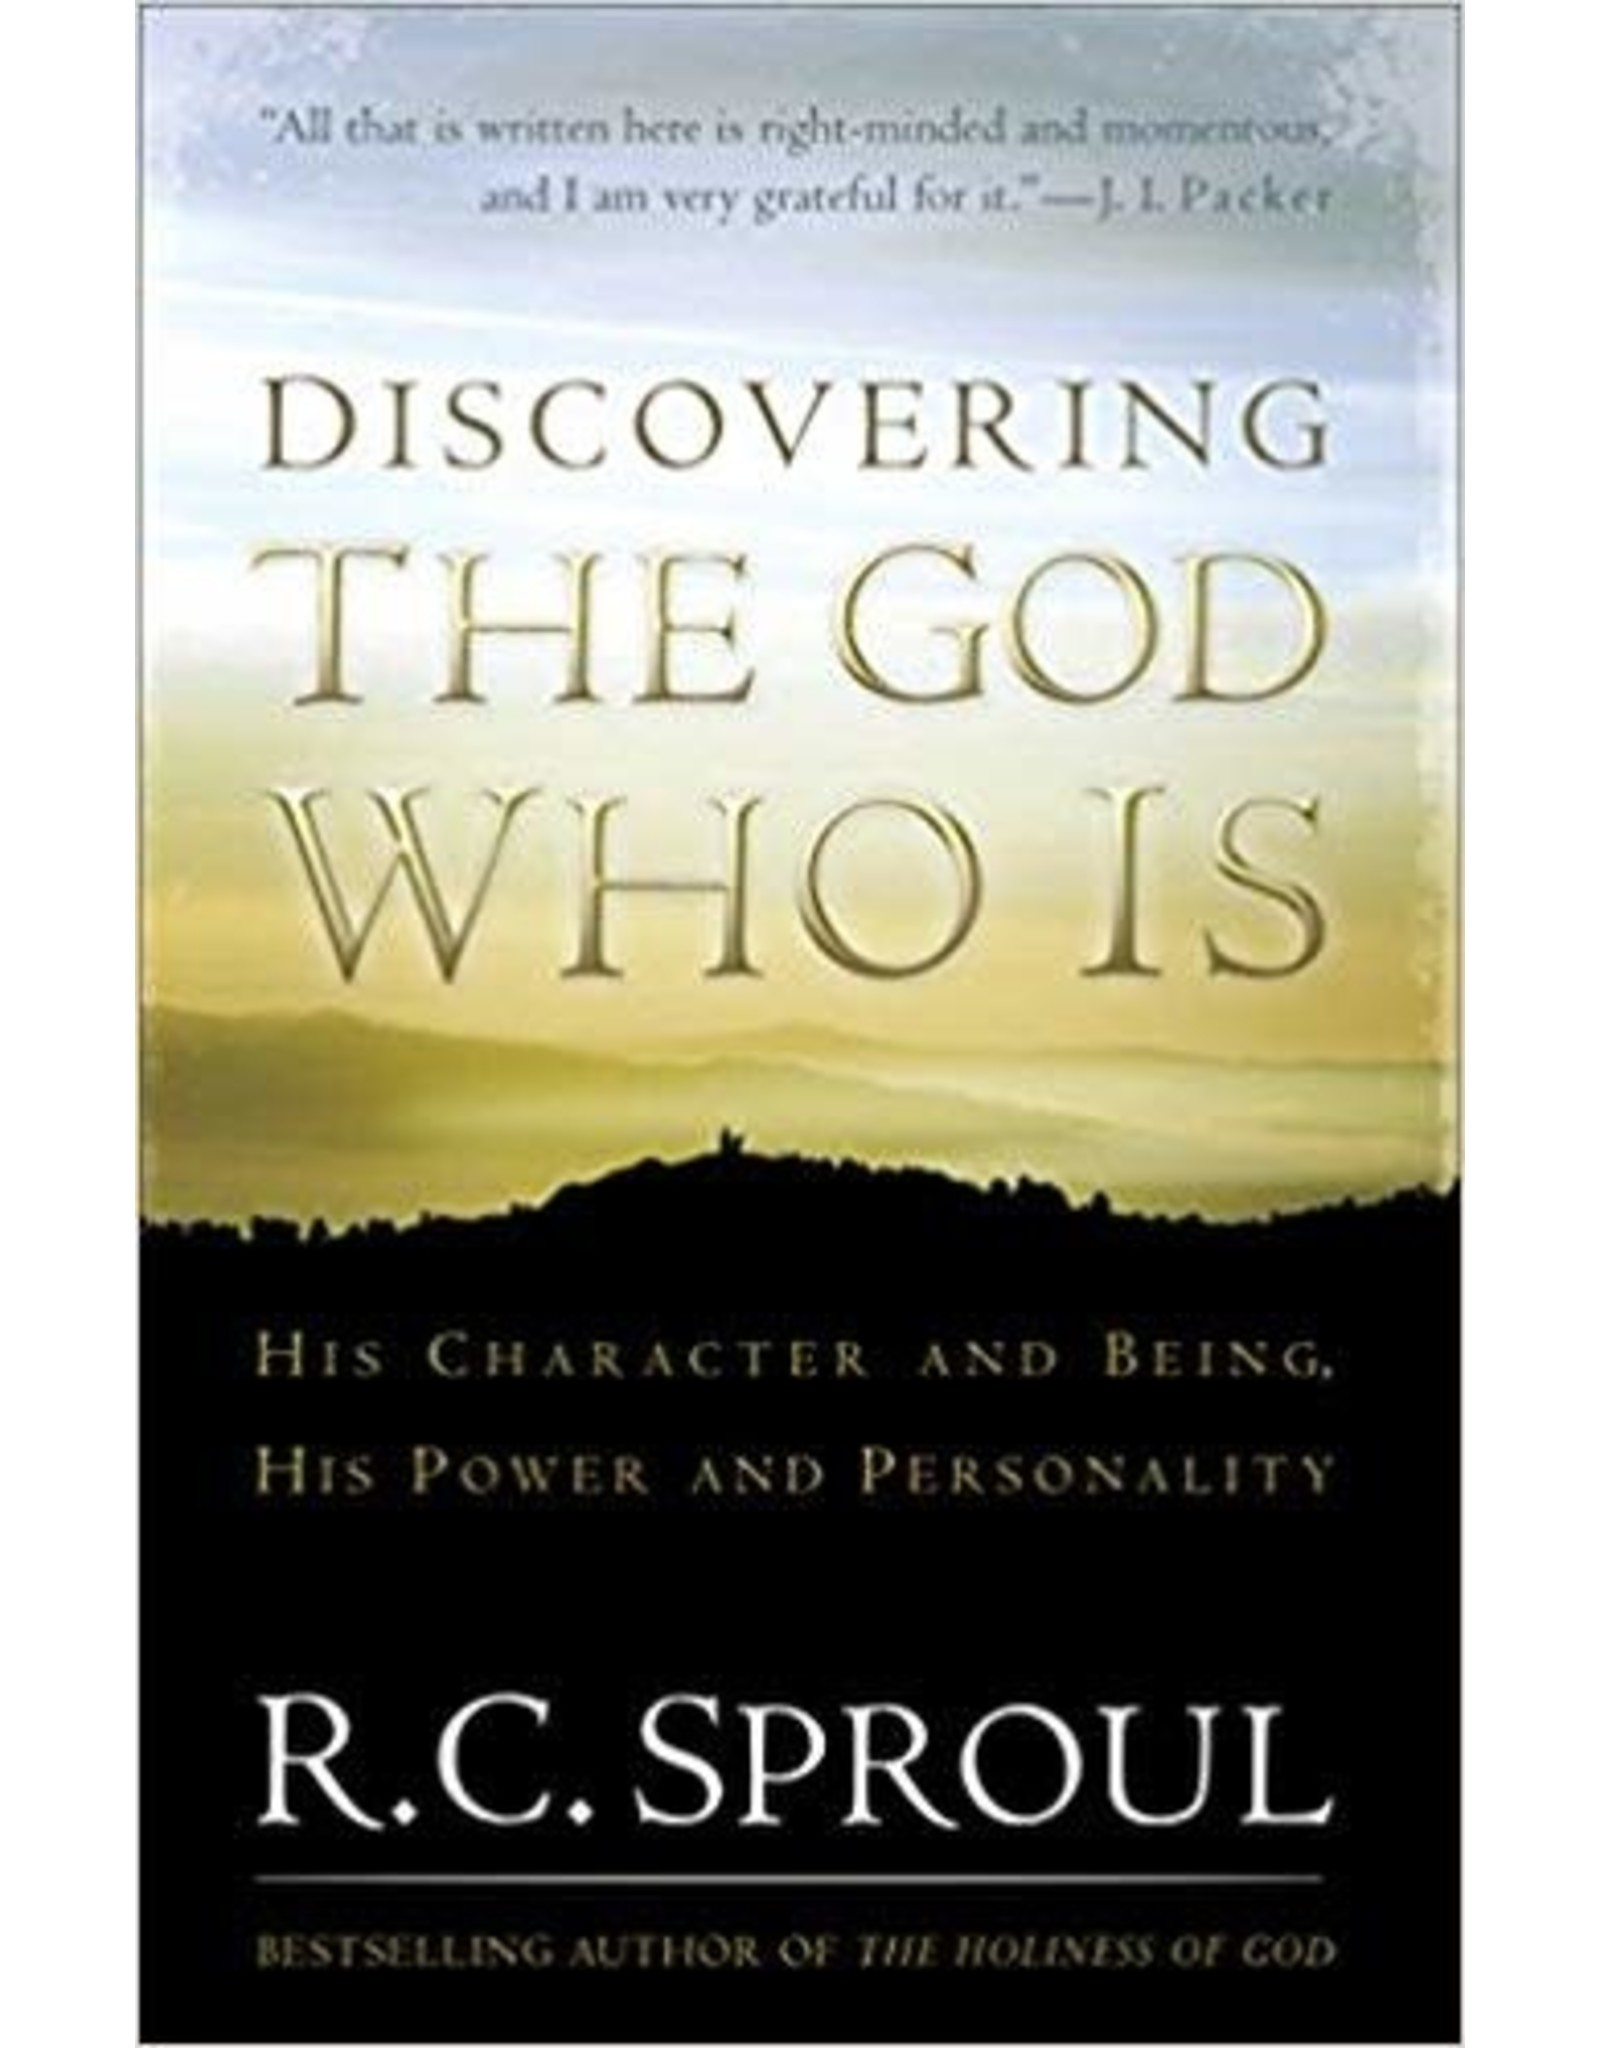 Sproul Discovering the God Who Is